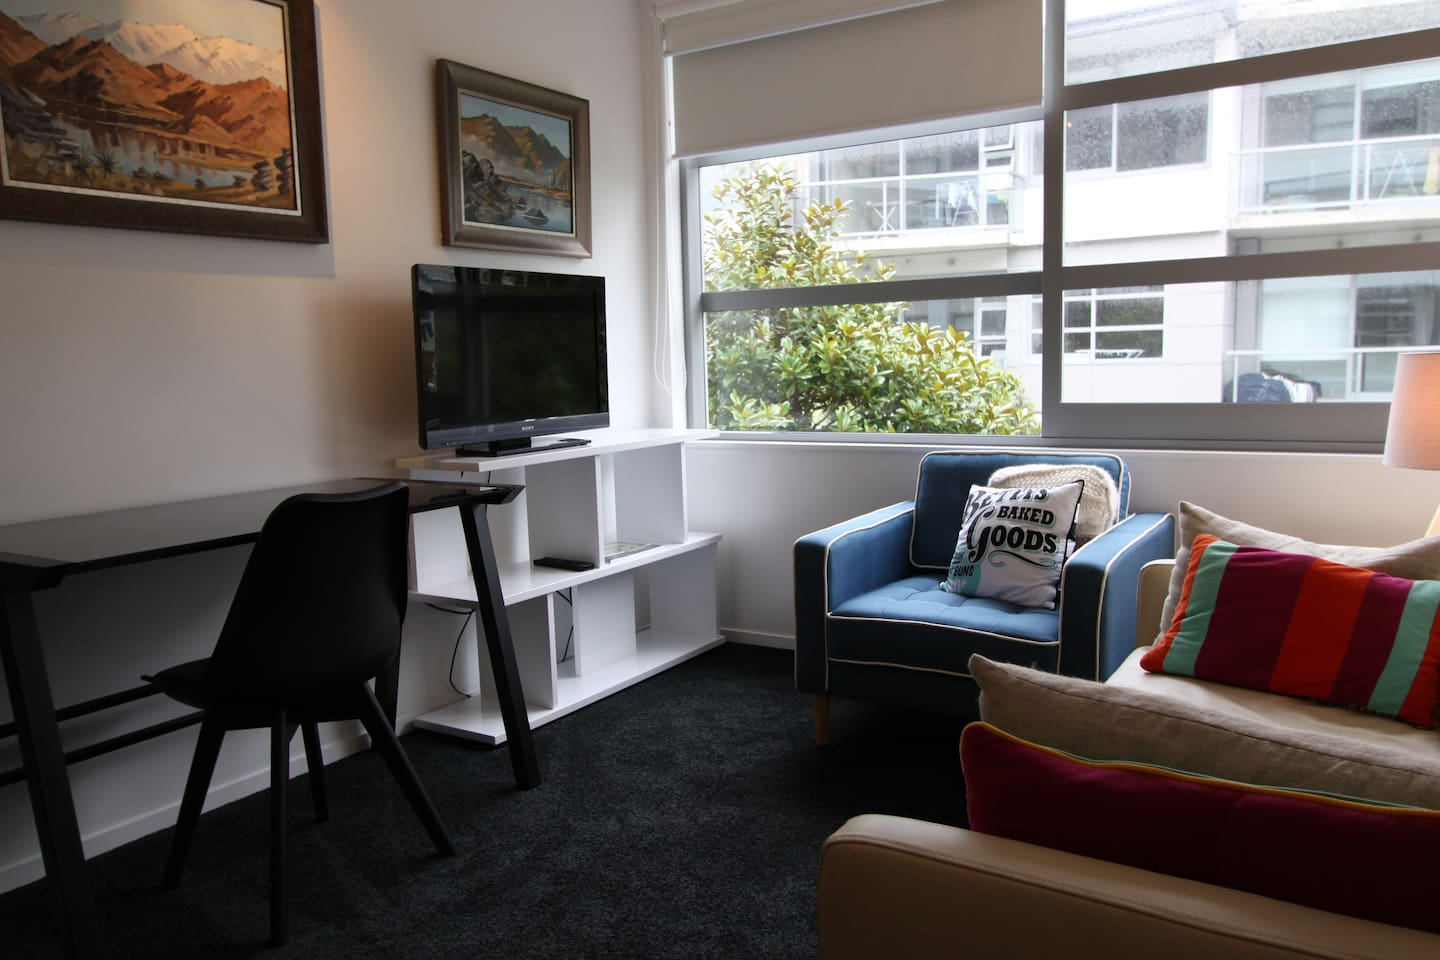 Studio apartment with panache, style and taste, and original artworks